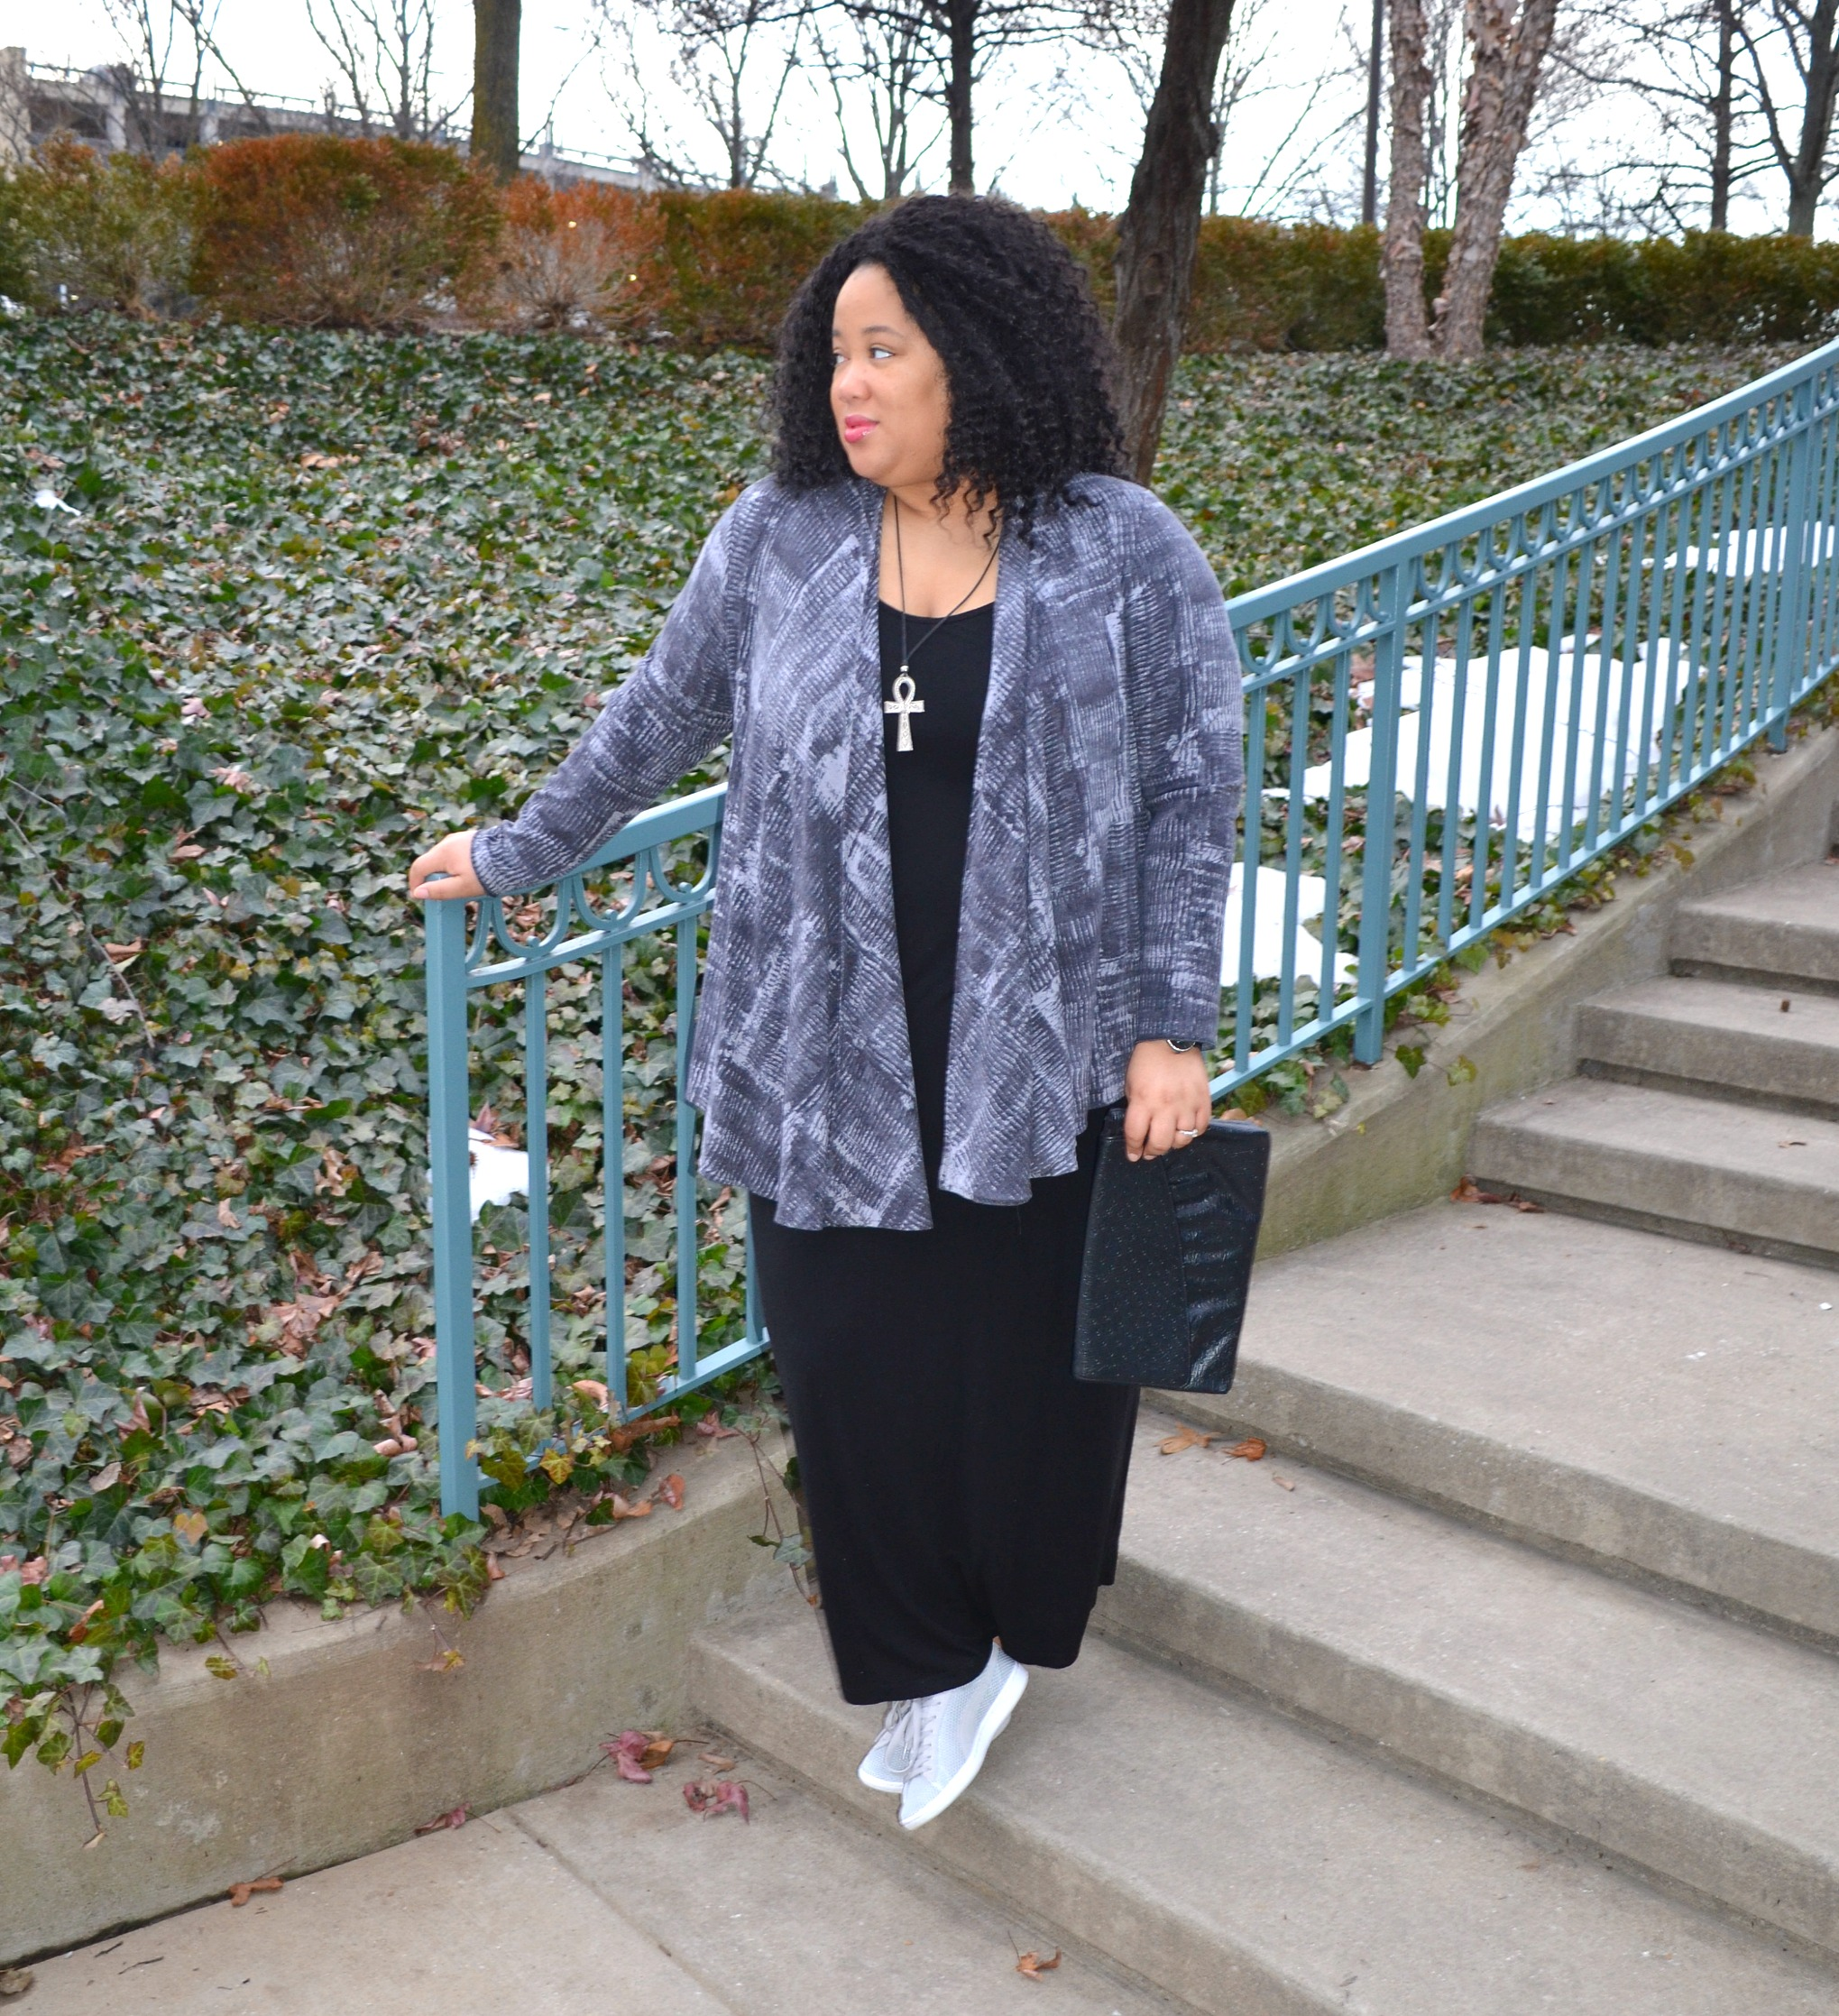 Maxi Dress and Sneakers OOTD